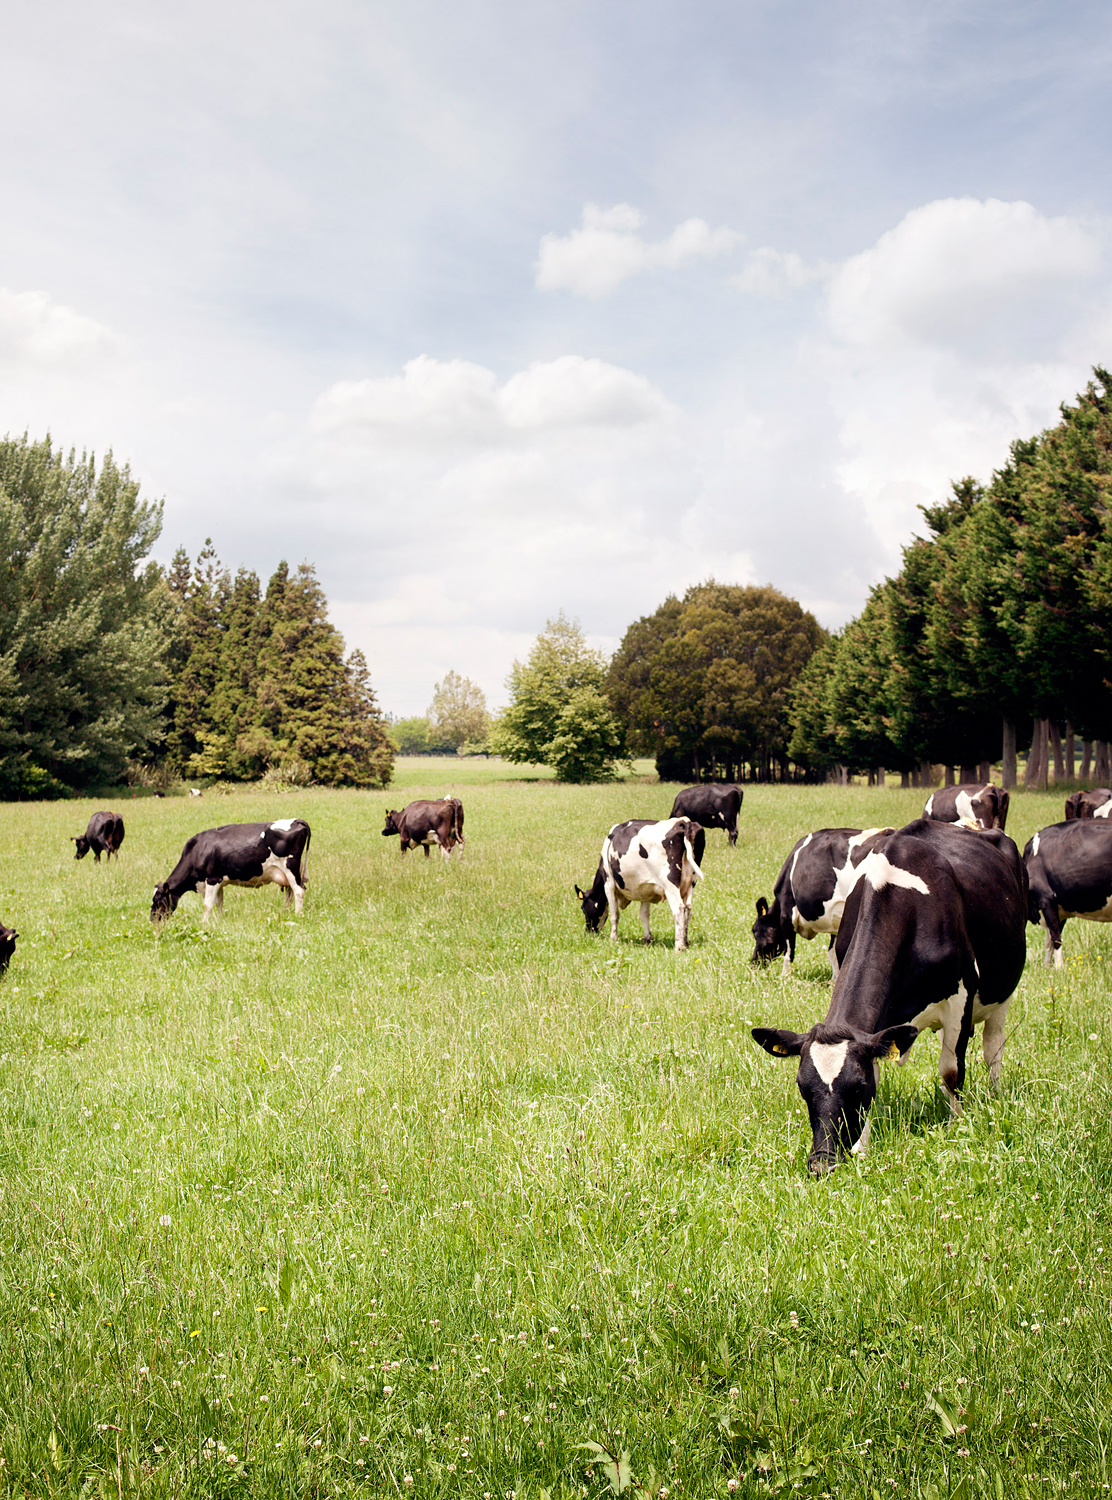 Nic-Staveley-Cow-Images_014.jpg